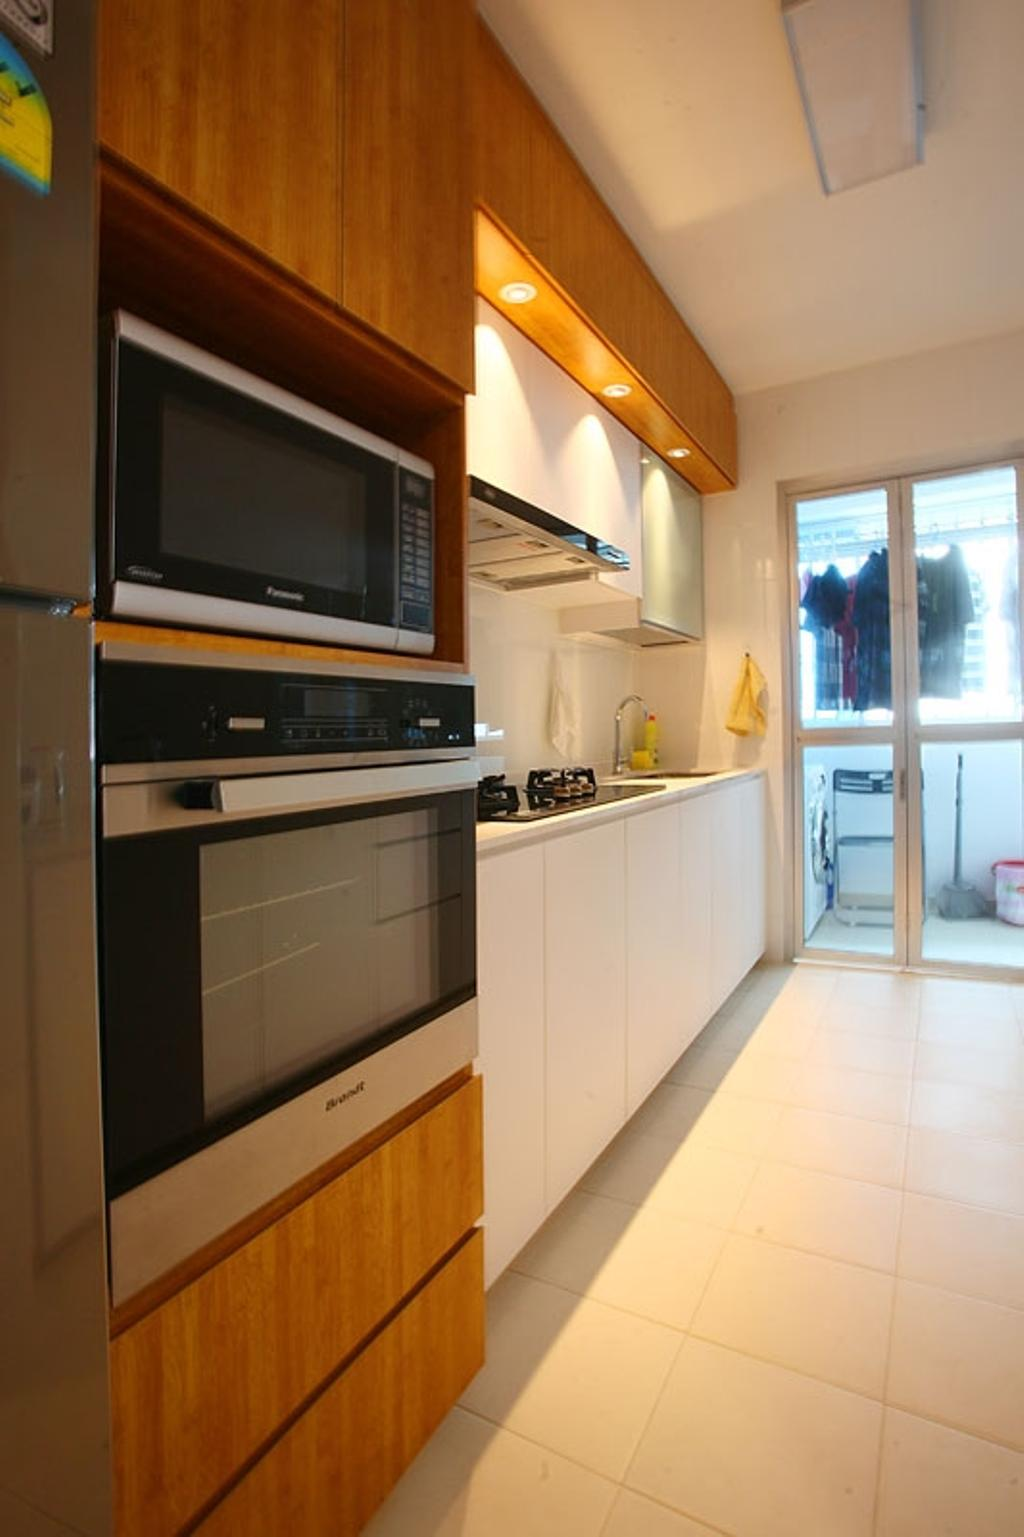 Transitional, HDB, Kitchen, Buangkok Green, Interior Designer, Fineline Design, Kitchen Cabinets, Cabinetry, Oven, Microwave, Downligh, White Cabinet, Brown Cabinet, Built In Oven, Appliance, Electrical Device, Indoors, Interior Design, Room